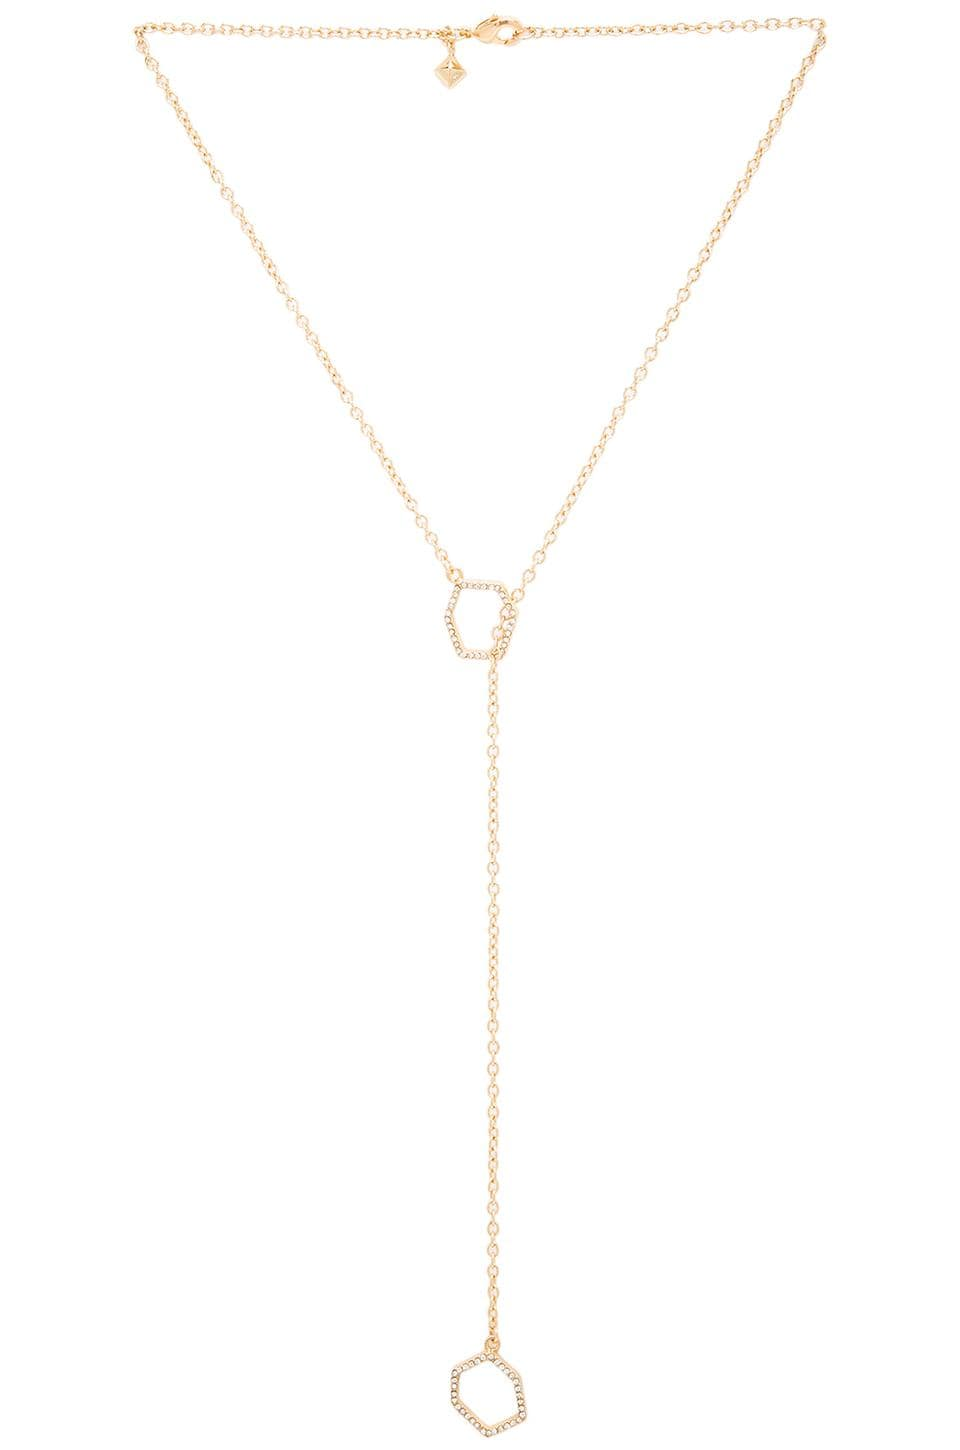 Rebecca Minkoff Lariat Necklace in Gold & Crystal